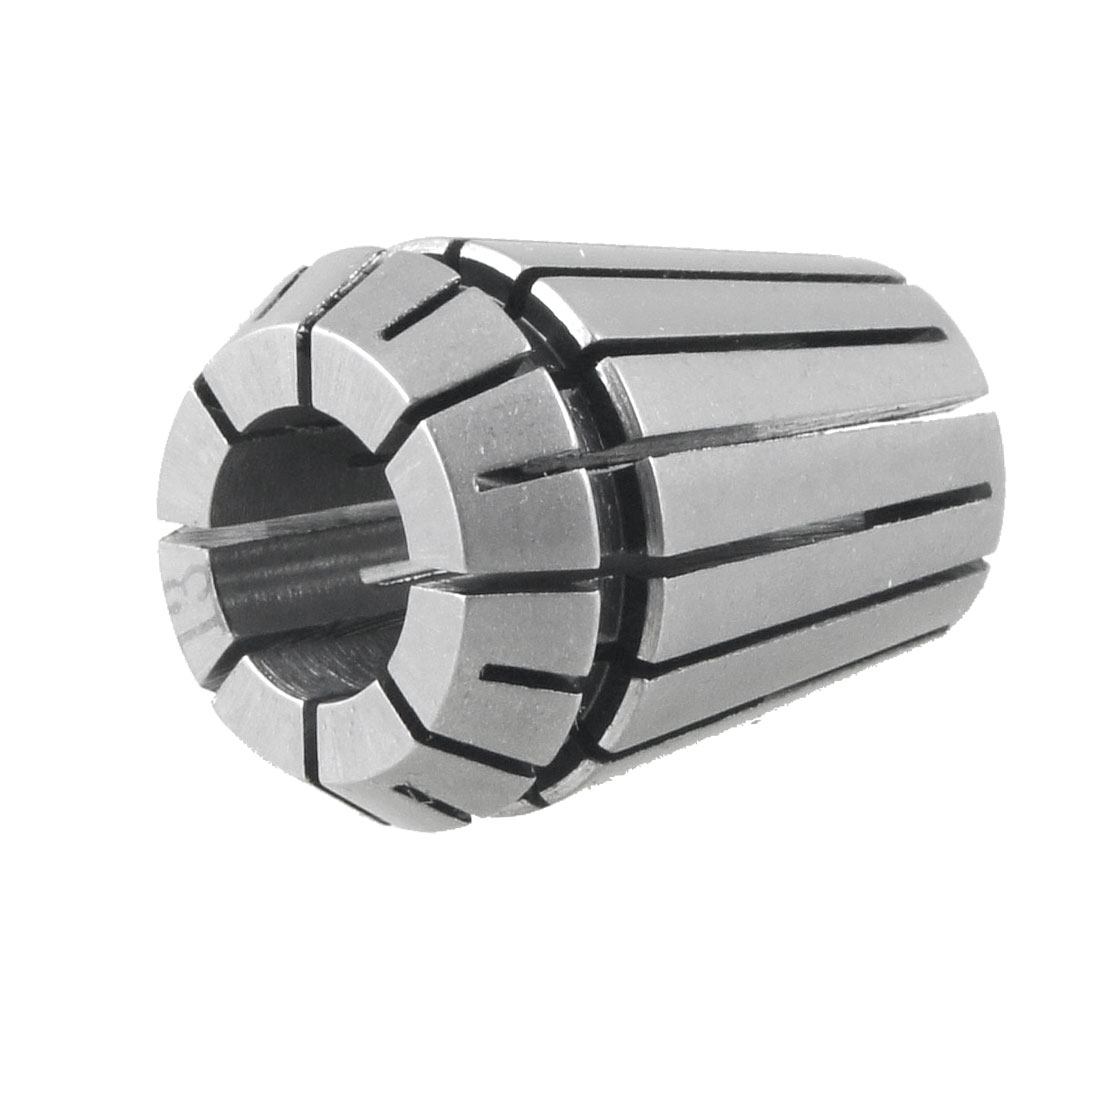 Round Chuck Mill Stainless Steel Spring Collet ER25 ER-25 13mm 1/2""